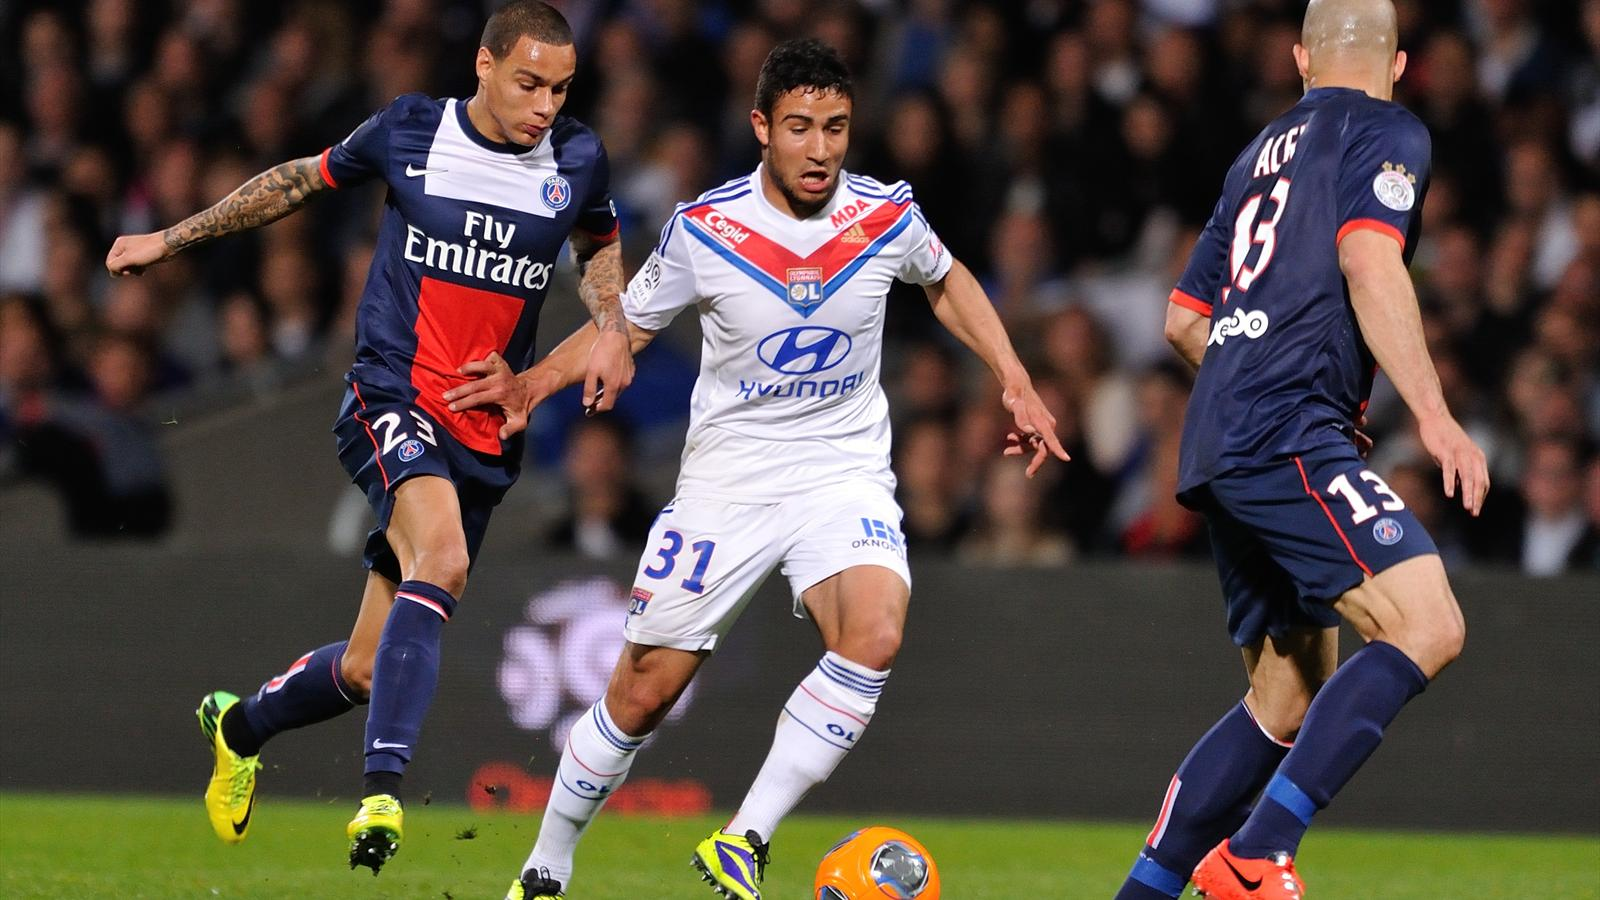 Psg lyon les quipes probables coupe de la ligue 2013 2014 football eurosport - Coupe de la ligue 2013 14 ...